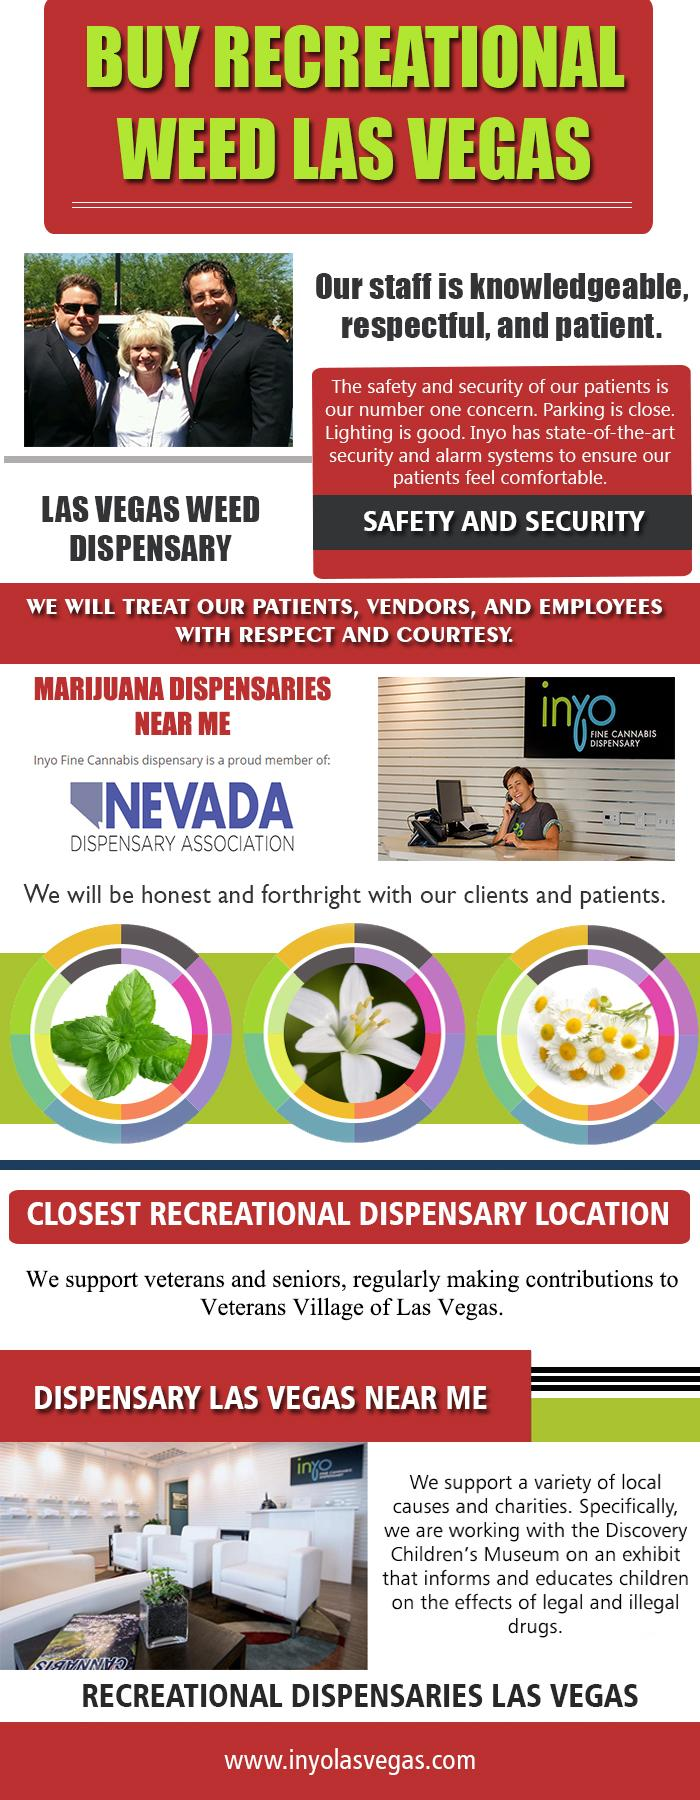 Buy Recreational Weed Las Vegas